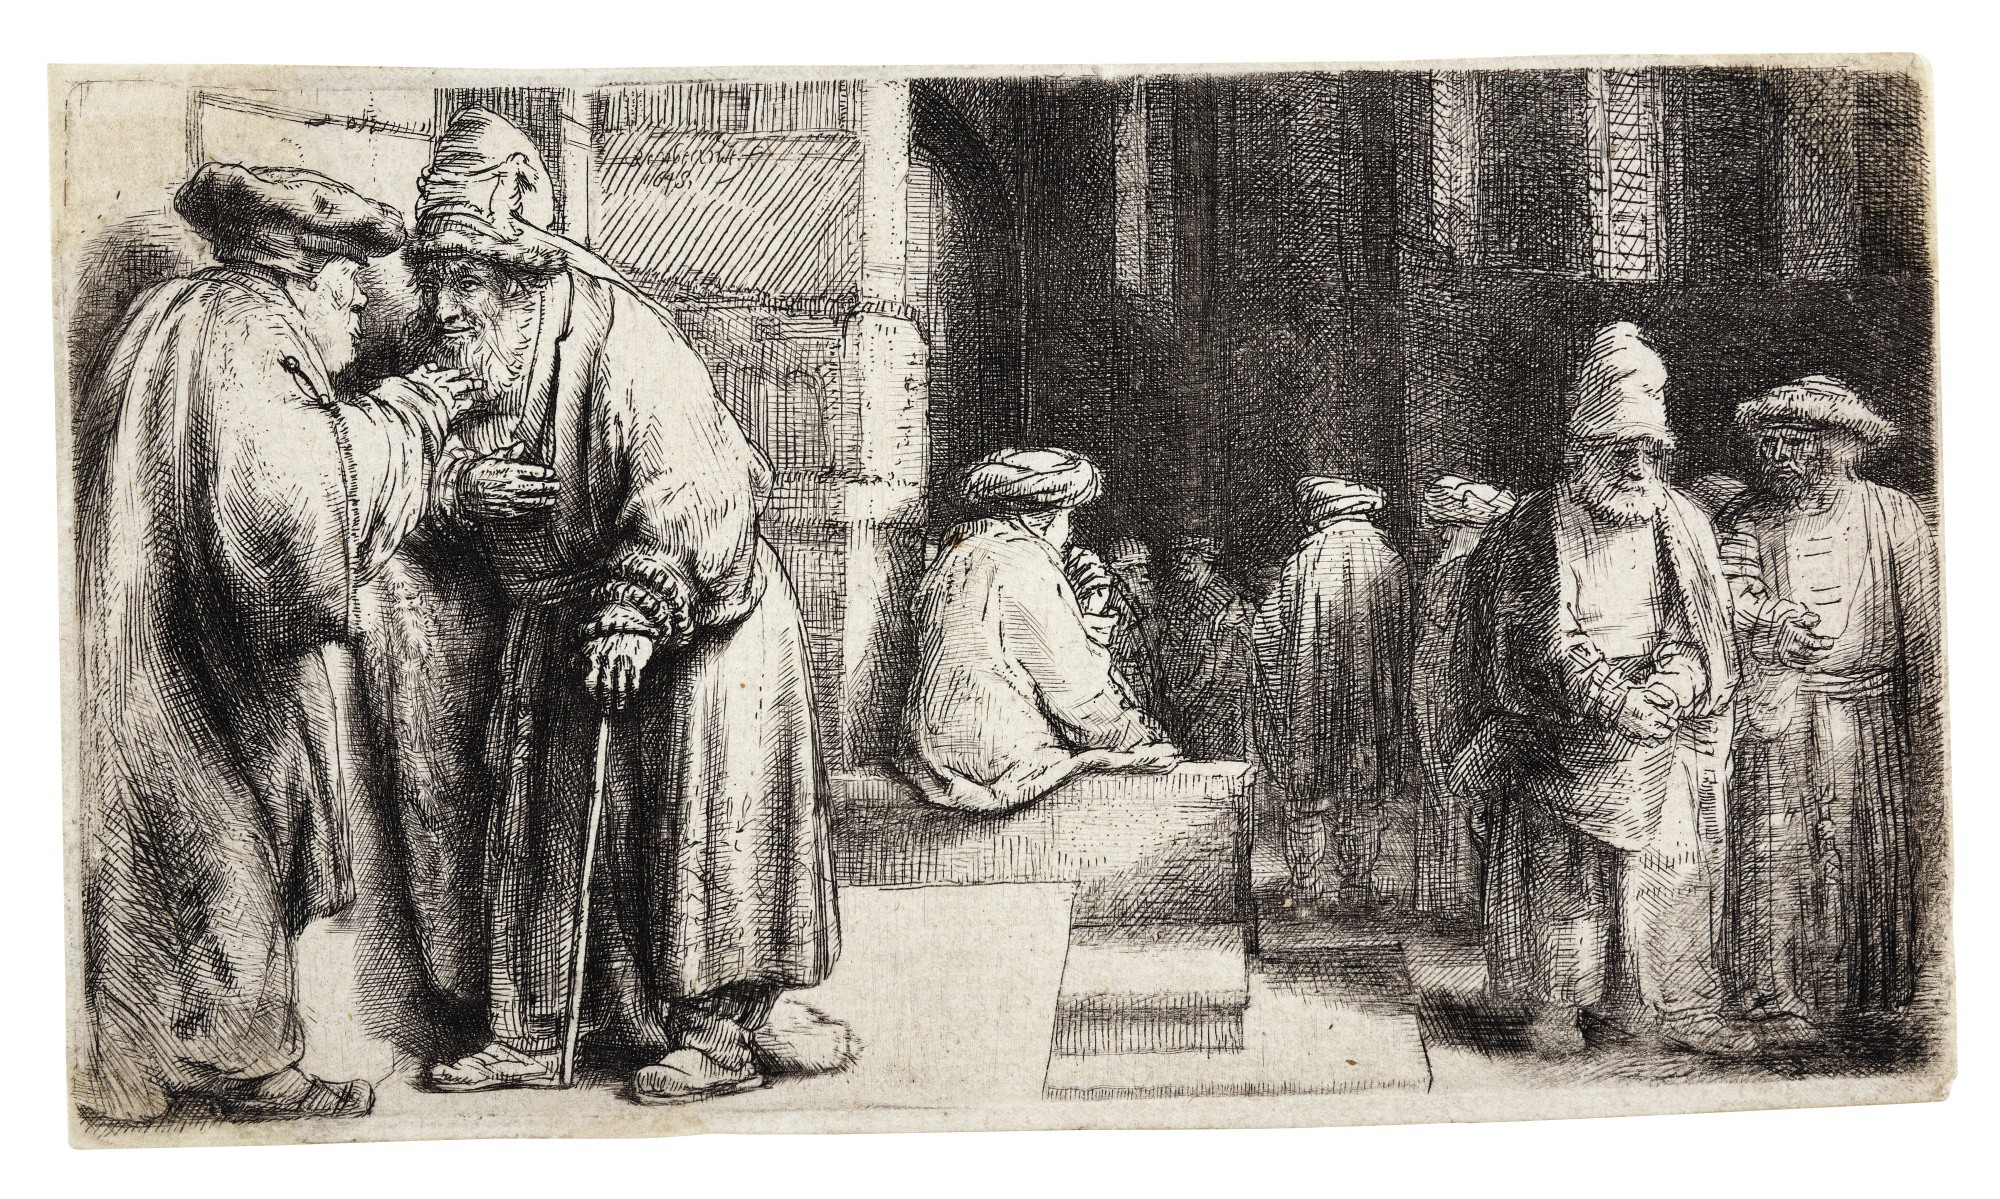 REMBRANDT HARMENSZ. VAN RIJN | JEWS IN THE SYNAGOGUE (B., HOLL. 126; NEW HOLL. 242; H. 234)